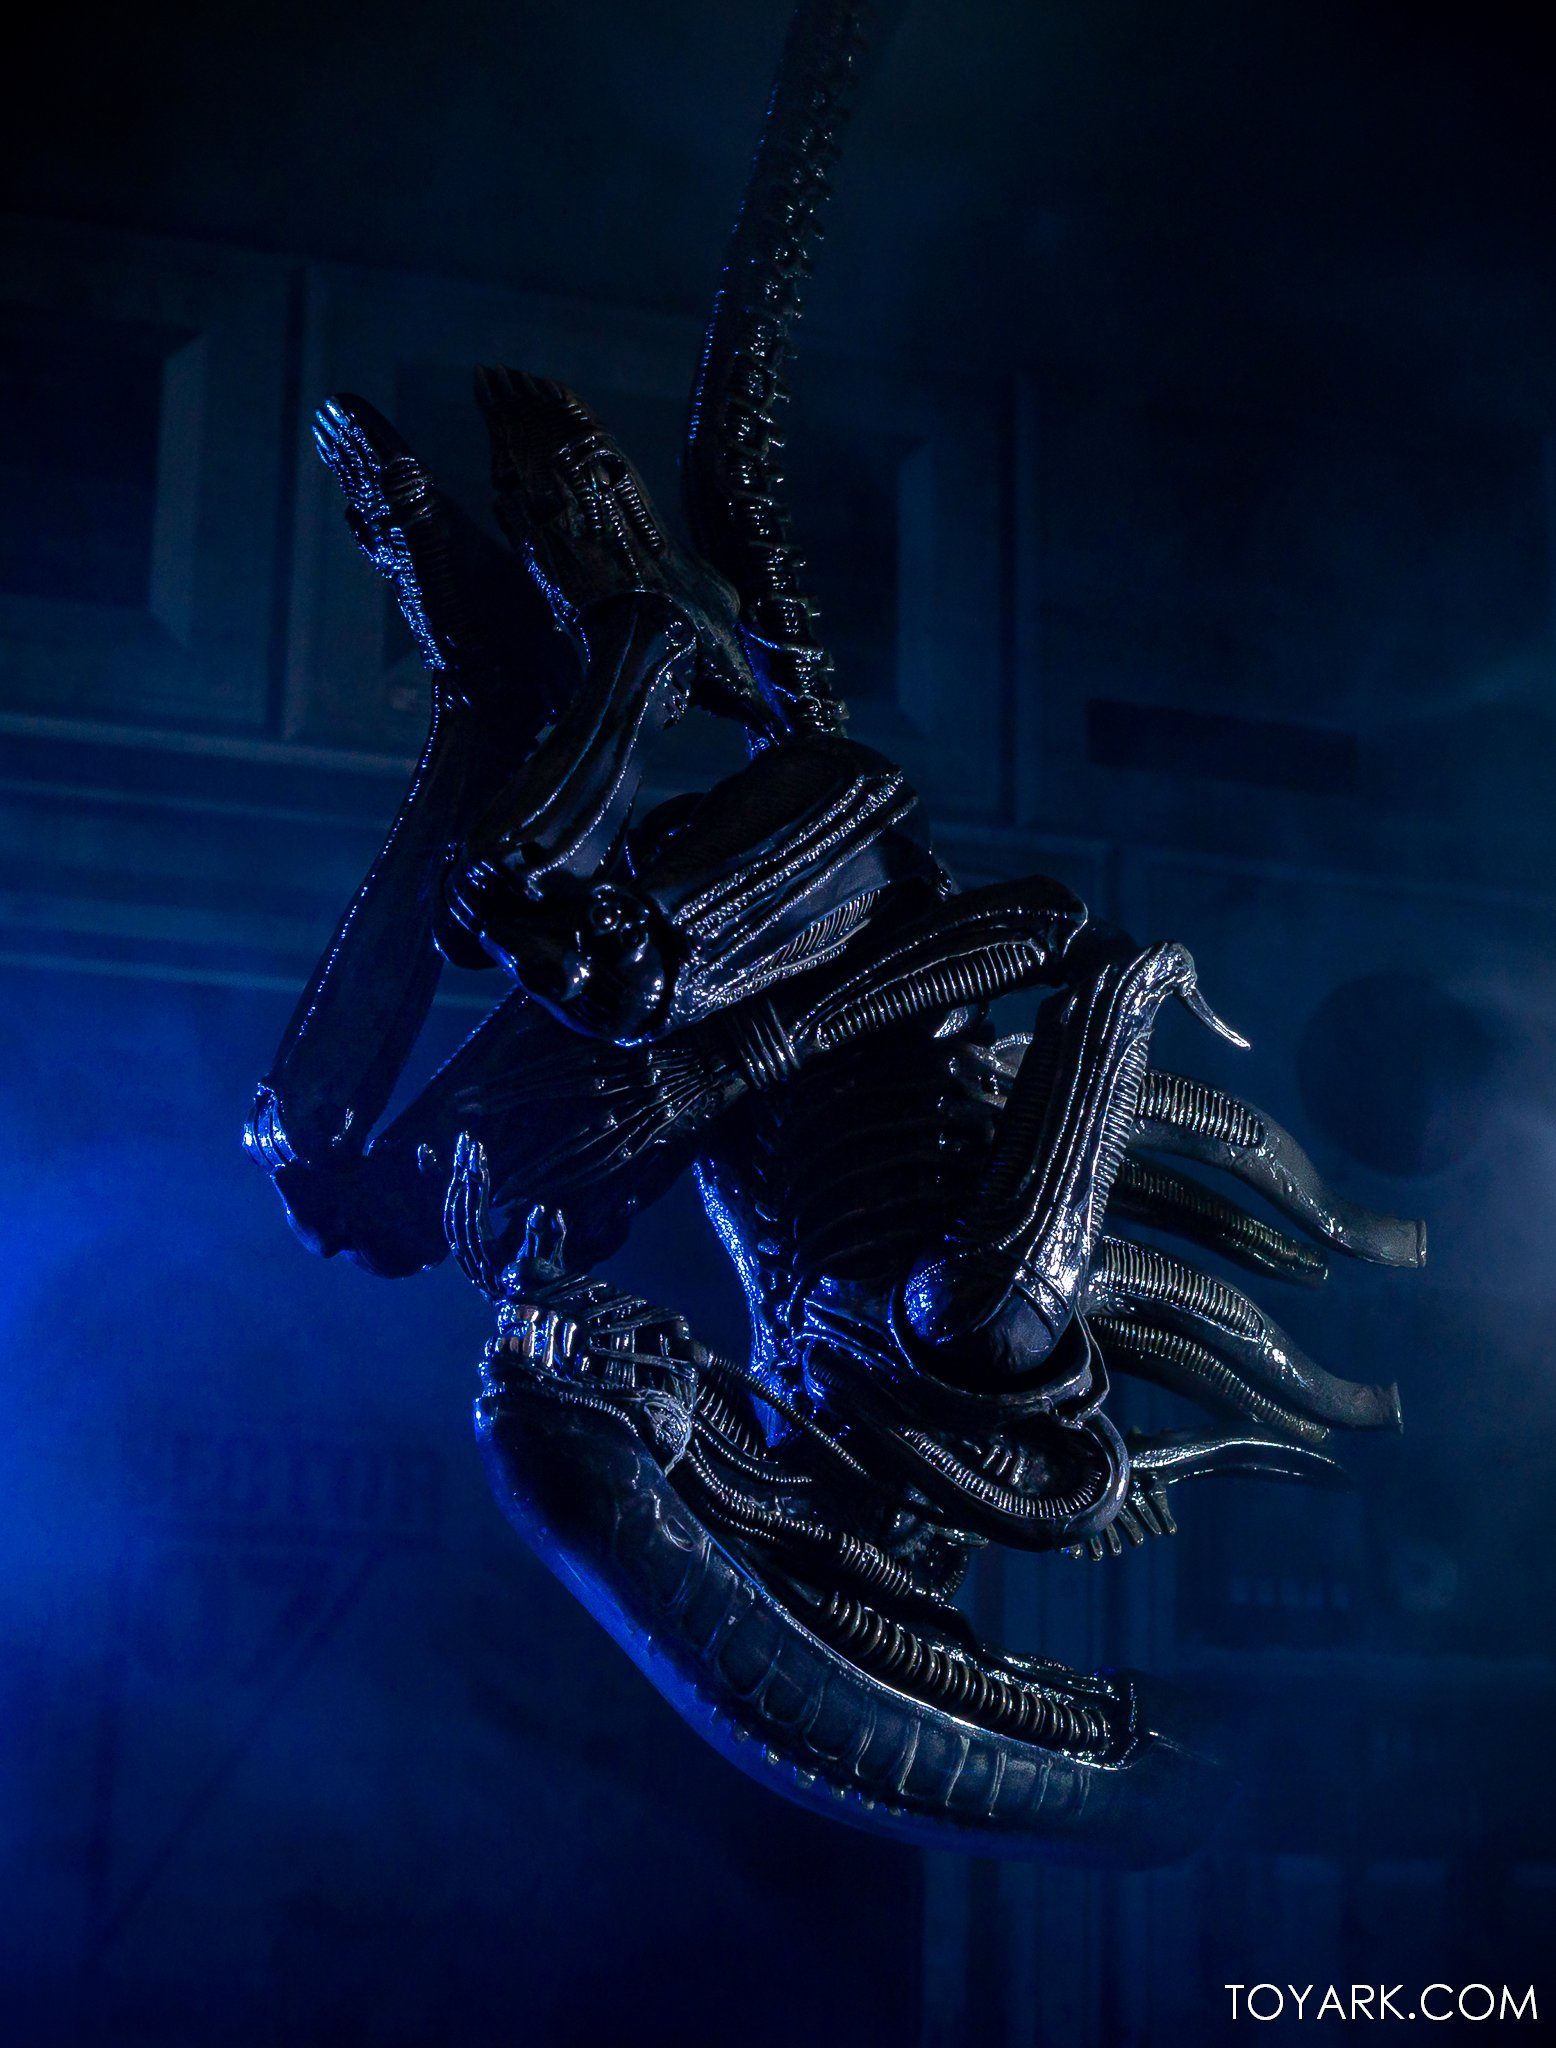 https://news.toyark.com/wp-content/uploads/sites/4/2020/01/NECA-Big-Chap-Alien-Ultimate-051.jpg